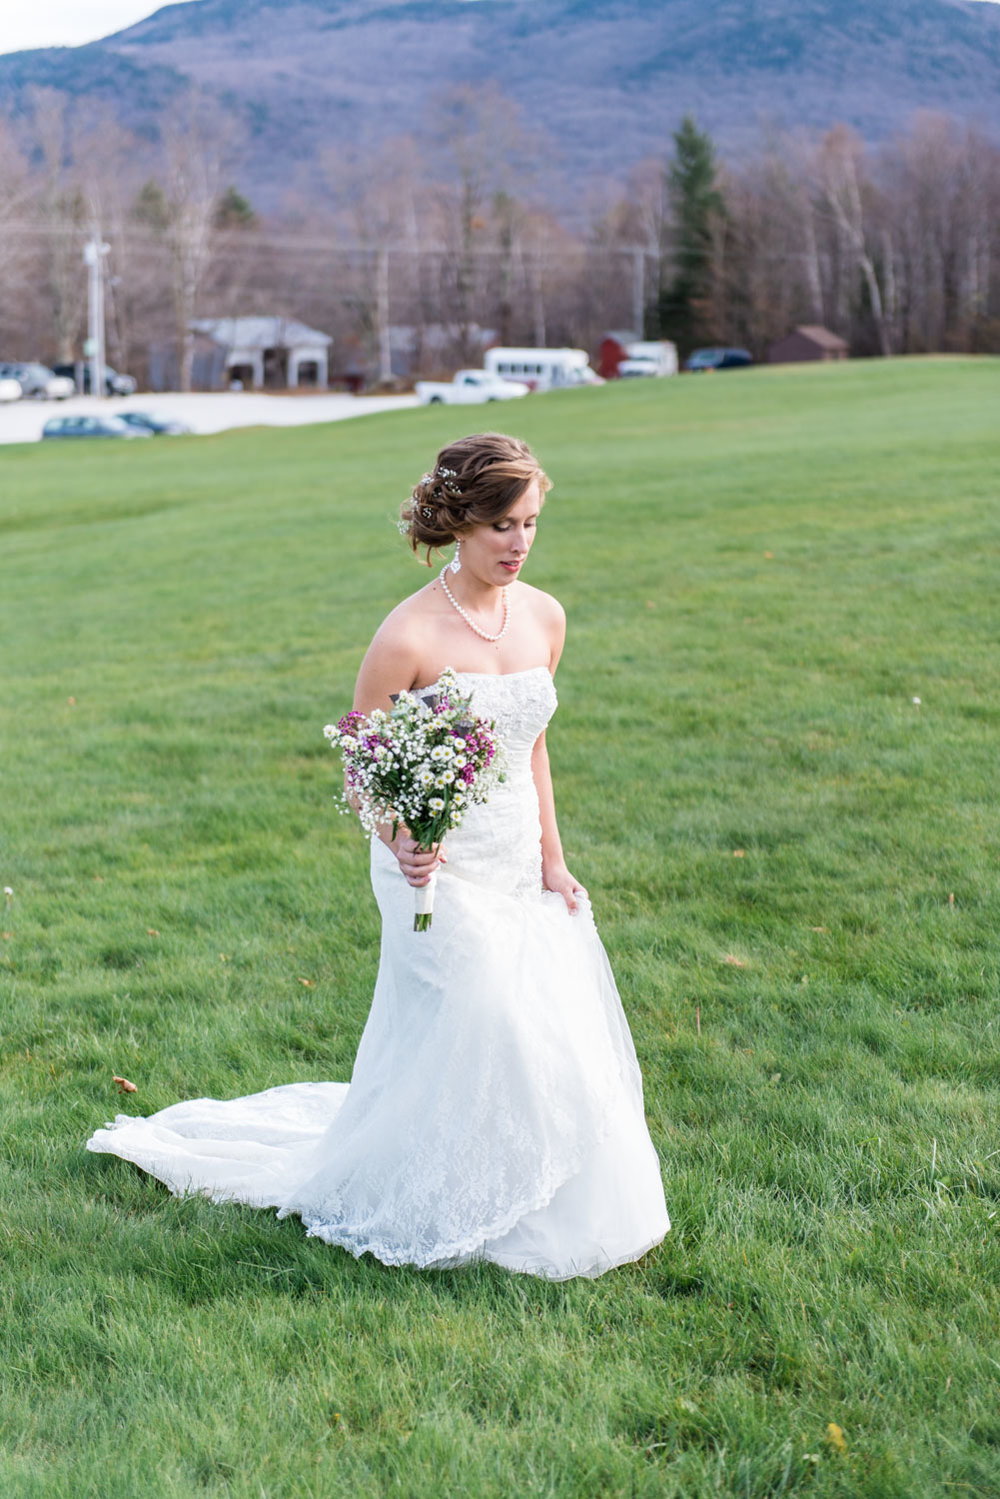 Sam + FJ | Romantic Mountain Top Inn and Resort Vermont Winter Wedding | Boston and New England Wedding Photography | Lorna Stell Photo